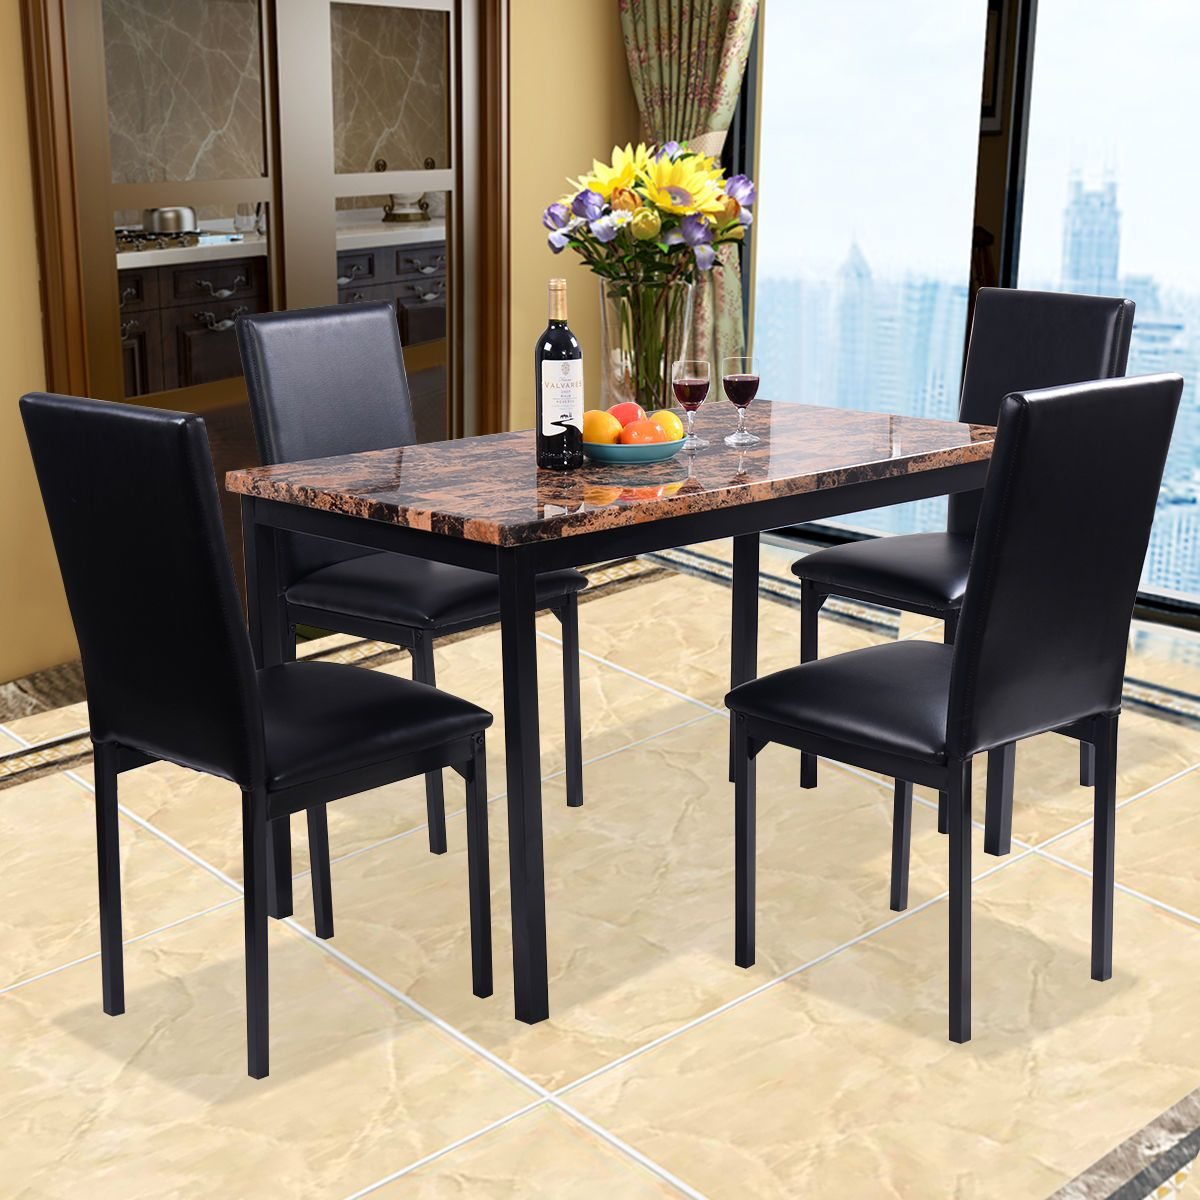 Kitchen bistro set   Piece Dining Set Faux Marble Table And  Chairs Kitchen Breakfast